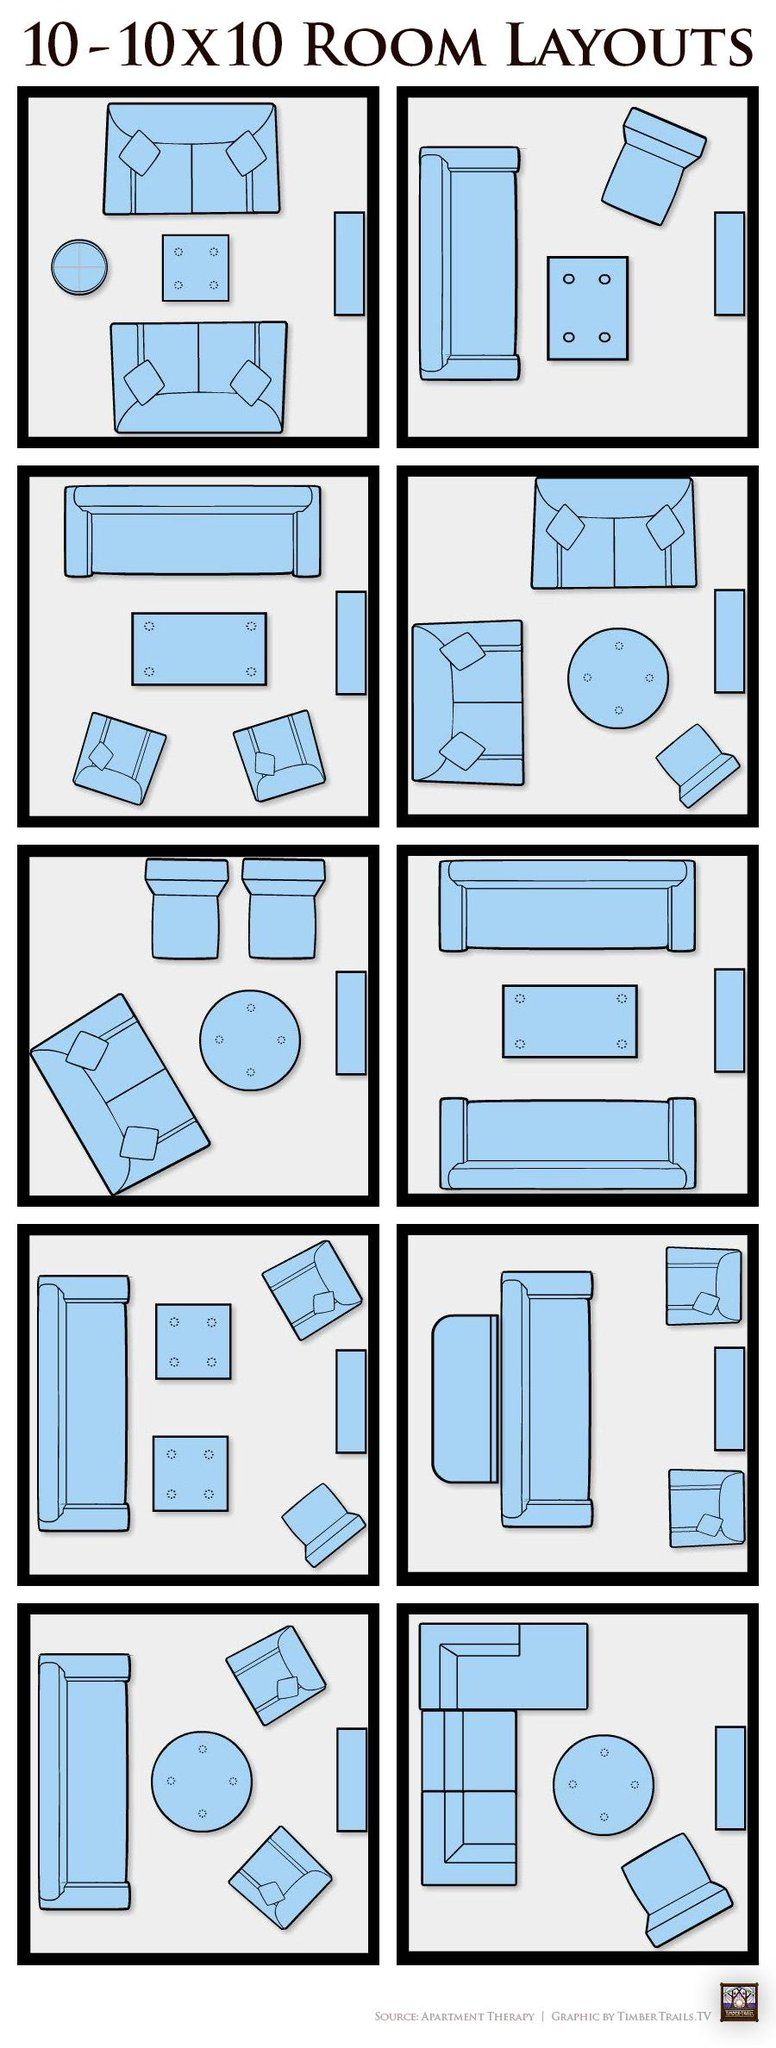 Tips Tricks 10 10x10 Living Room Furniture Layout Ideas Timbertrailstv Livingroom Layout Living Room Furniture Layout Room Layout #tiny #living #room #layout